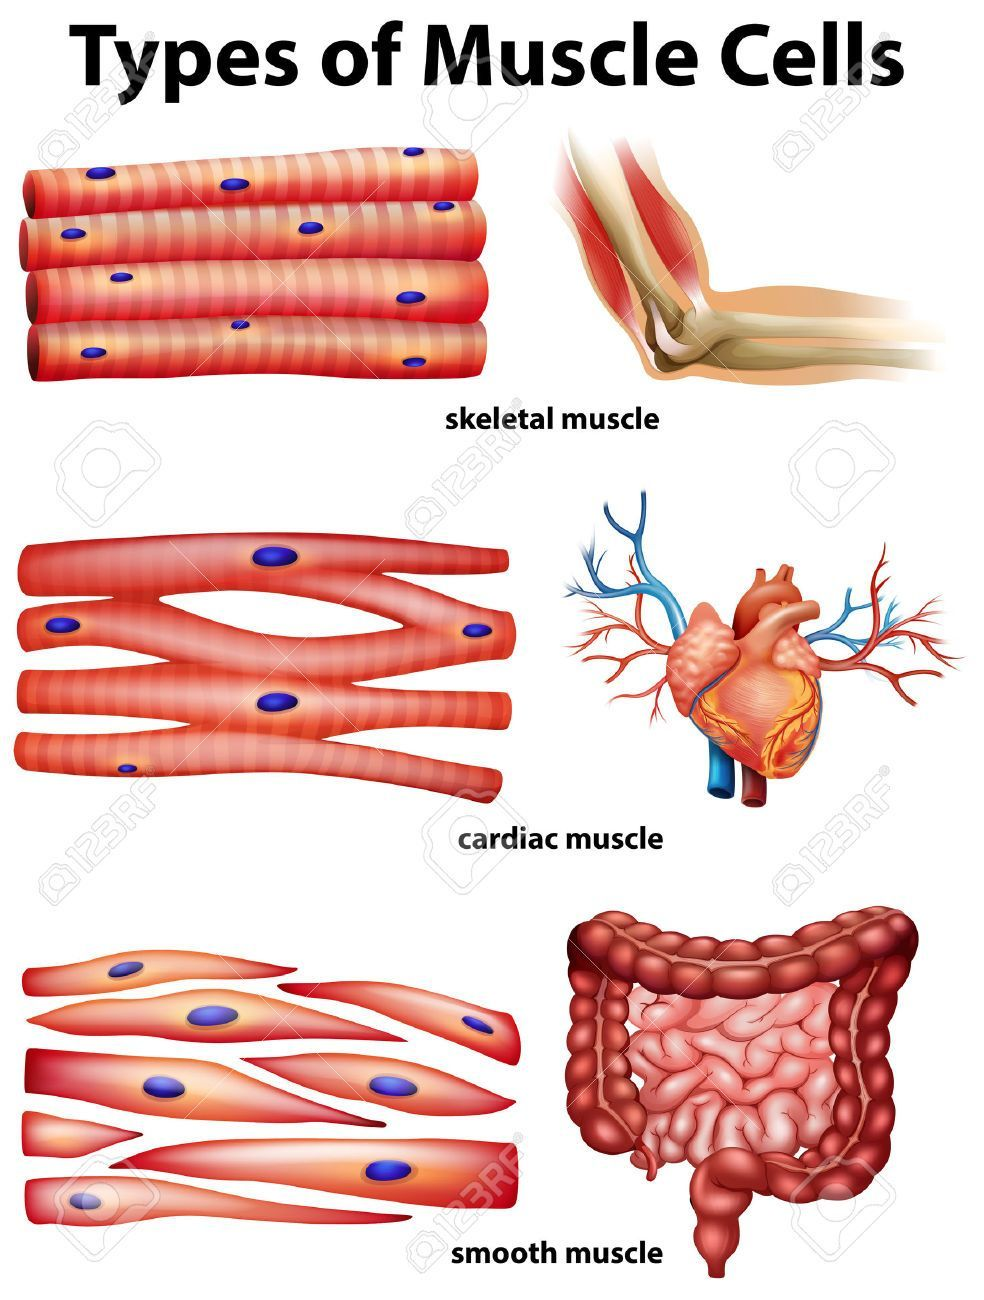 human muscle cell diagram 25 hp johnson outboard parts labeled trusted wiring online cardiac anatomy drawing pinterest skeletal structure